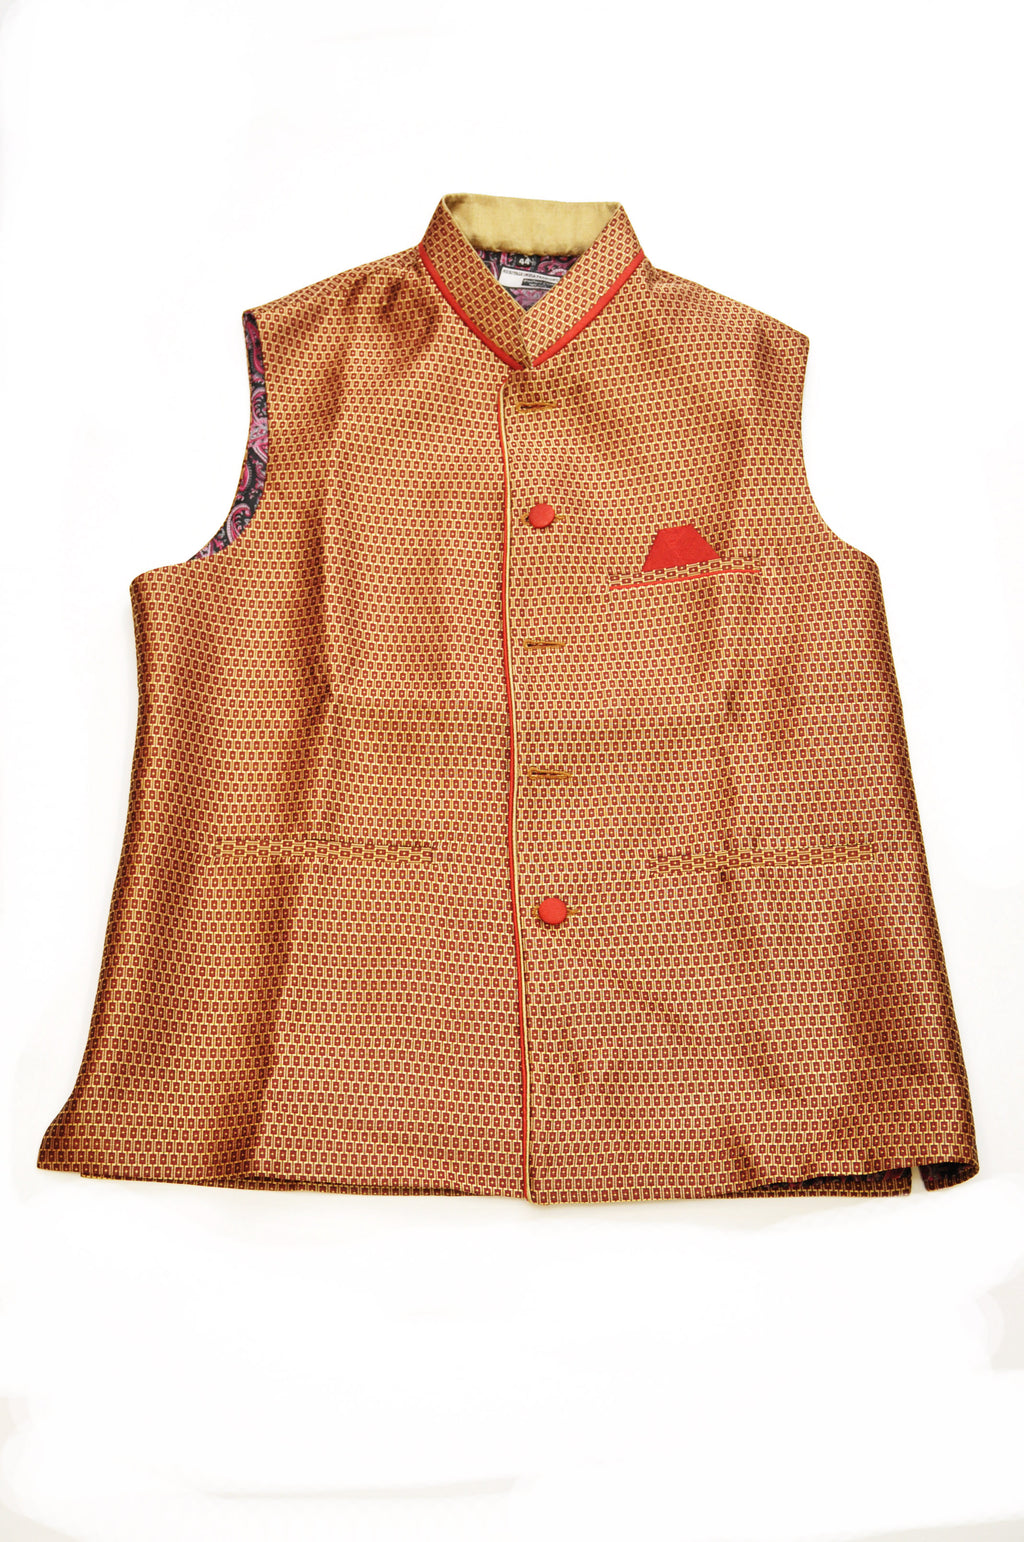 Rust and Tan Vest